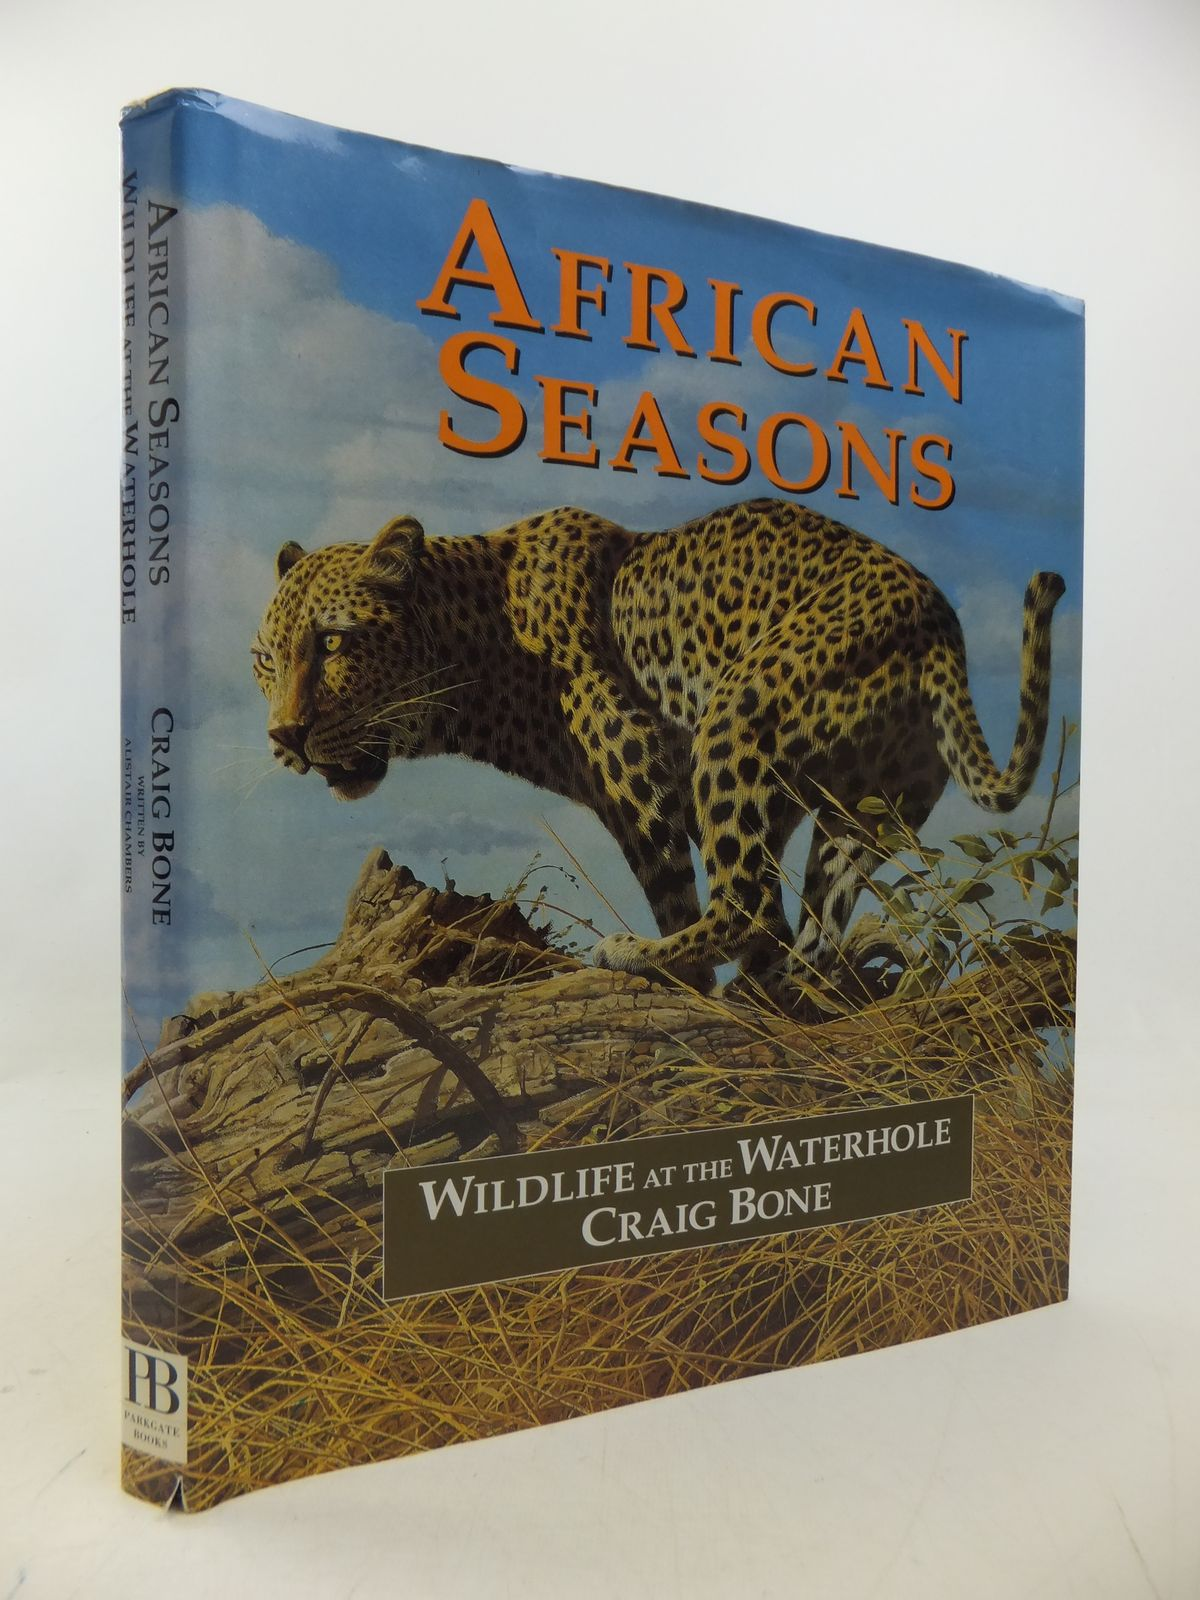 Photo of AFRICAN SEASONS WILDLIFE AT THE WATERHOLE written by Chambers, Alistair illustrated by Bone, Craig published by Parkgate Books (STOCK CODE: 2113206)  for sale by Stella & Rose's Books